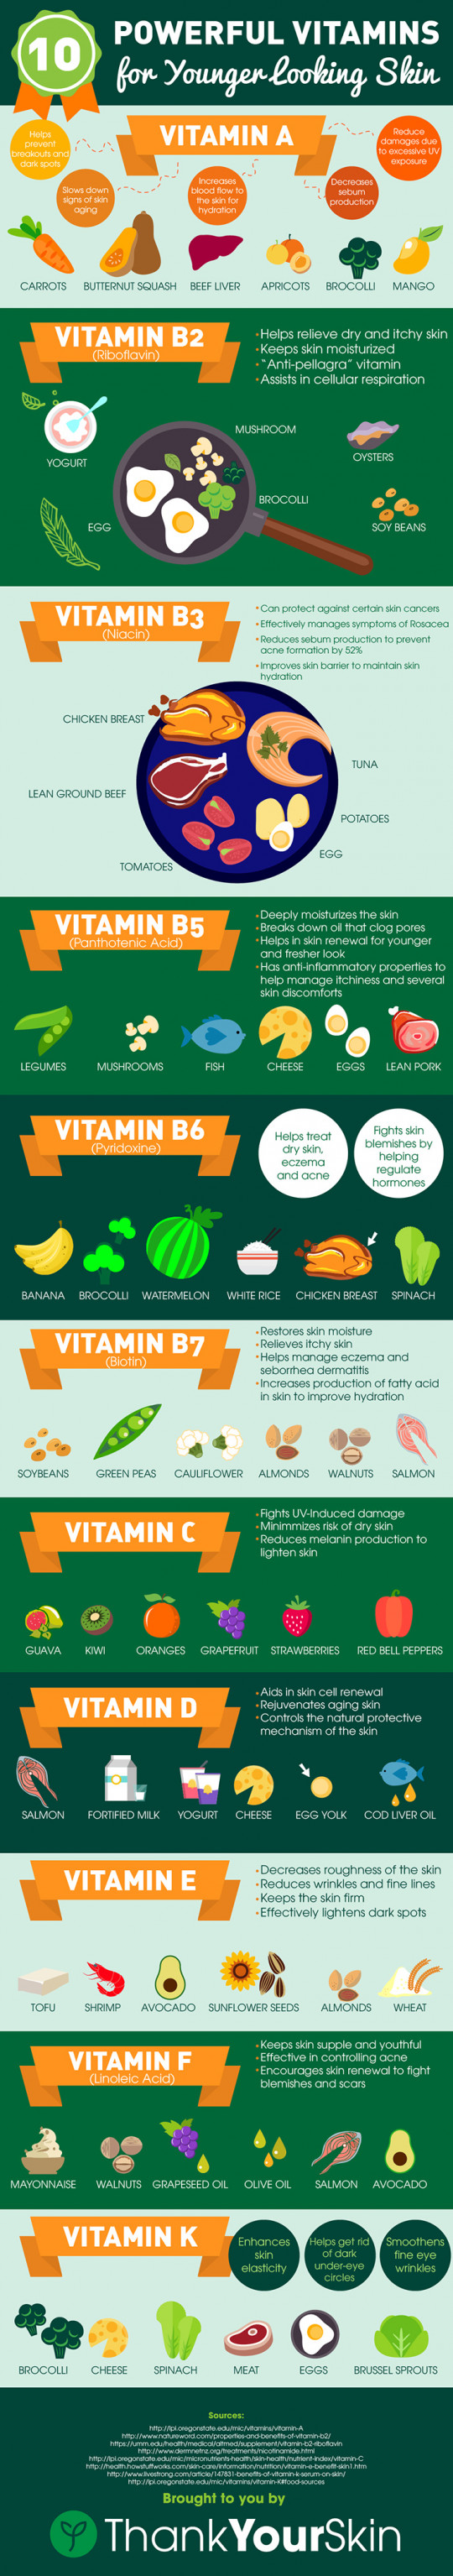 10 Powerful Vitamins for Younger Looking Skin